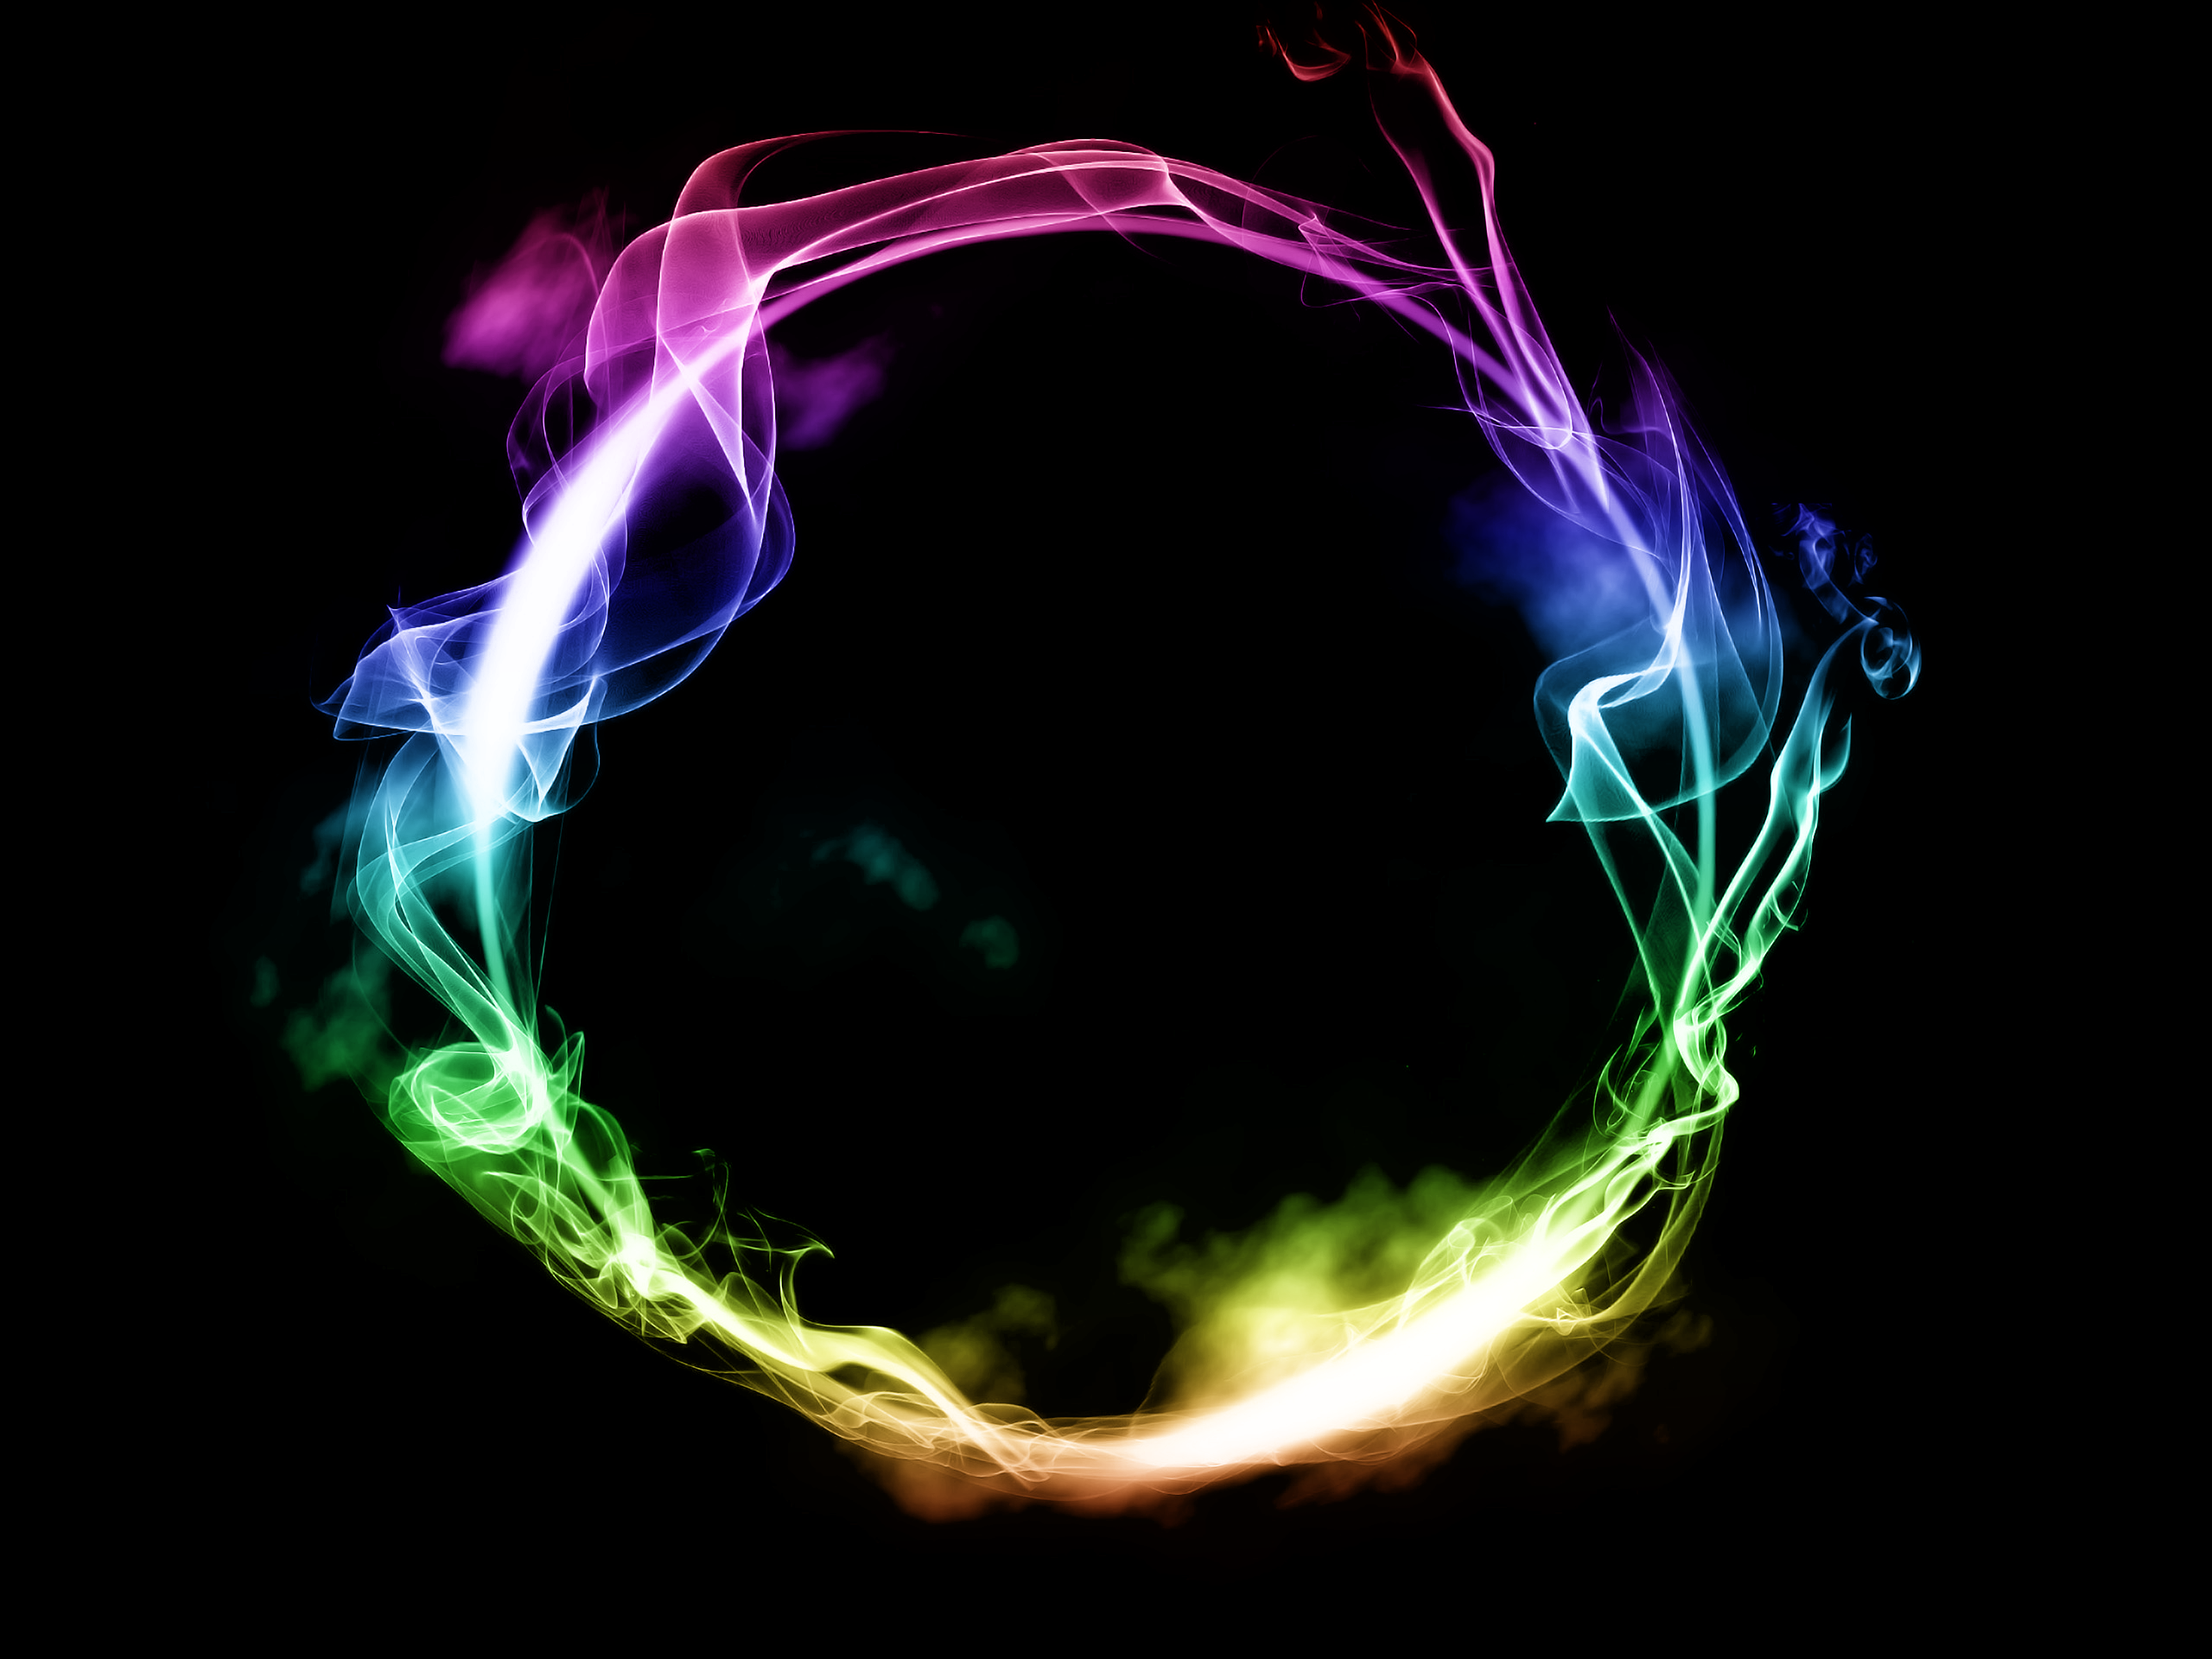 Rainbow Ring Of Smoke Smoke Wallpaper Mobile Legend Wallpaper Red And Black Background